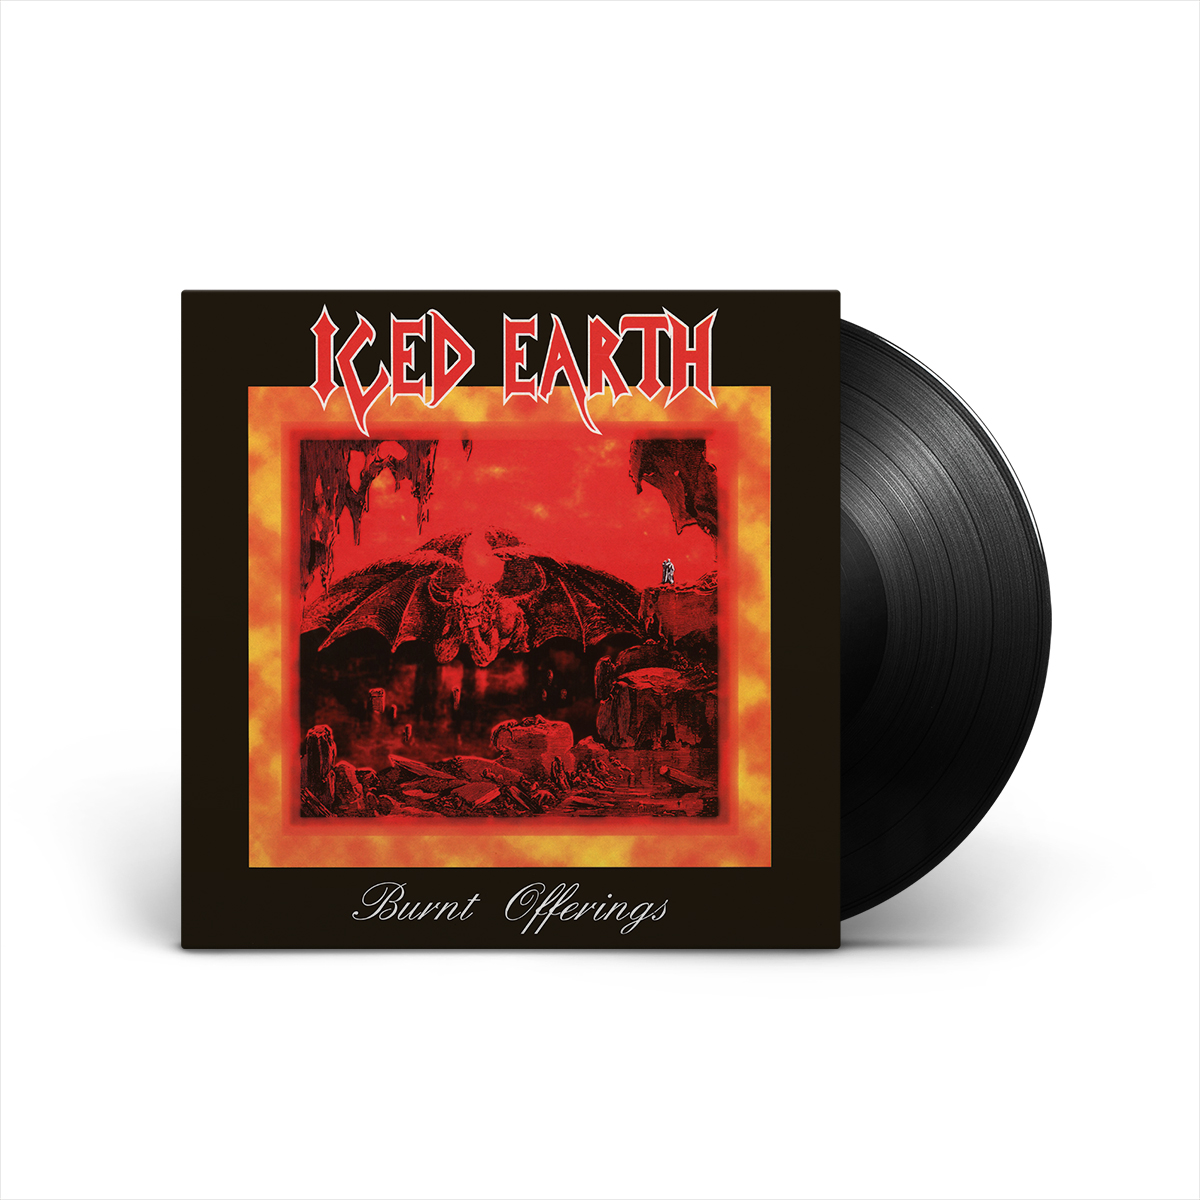 Iced Earth - Burnt Offerings 2 LP